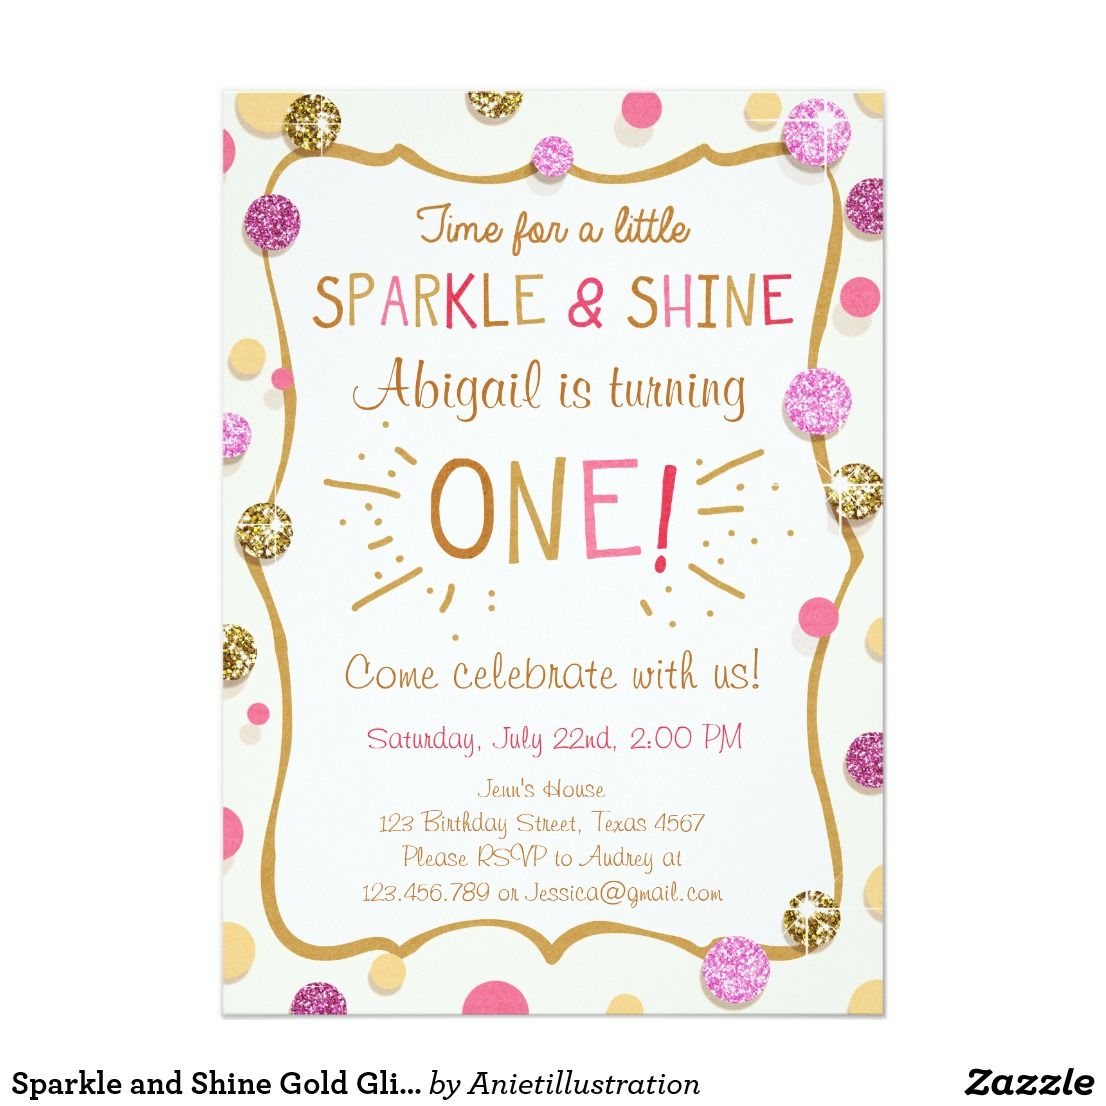 Sparkle and shine gold glitter birthday invitation glitter sparkle and shine gold glitter birthday invitation filmwisefo